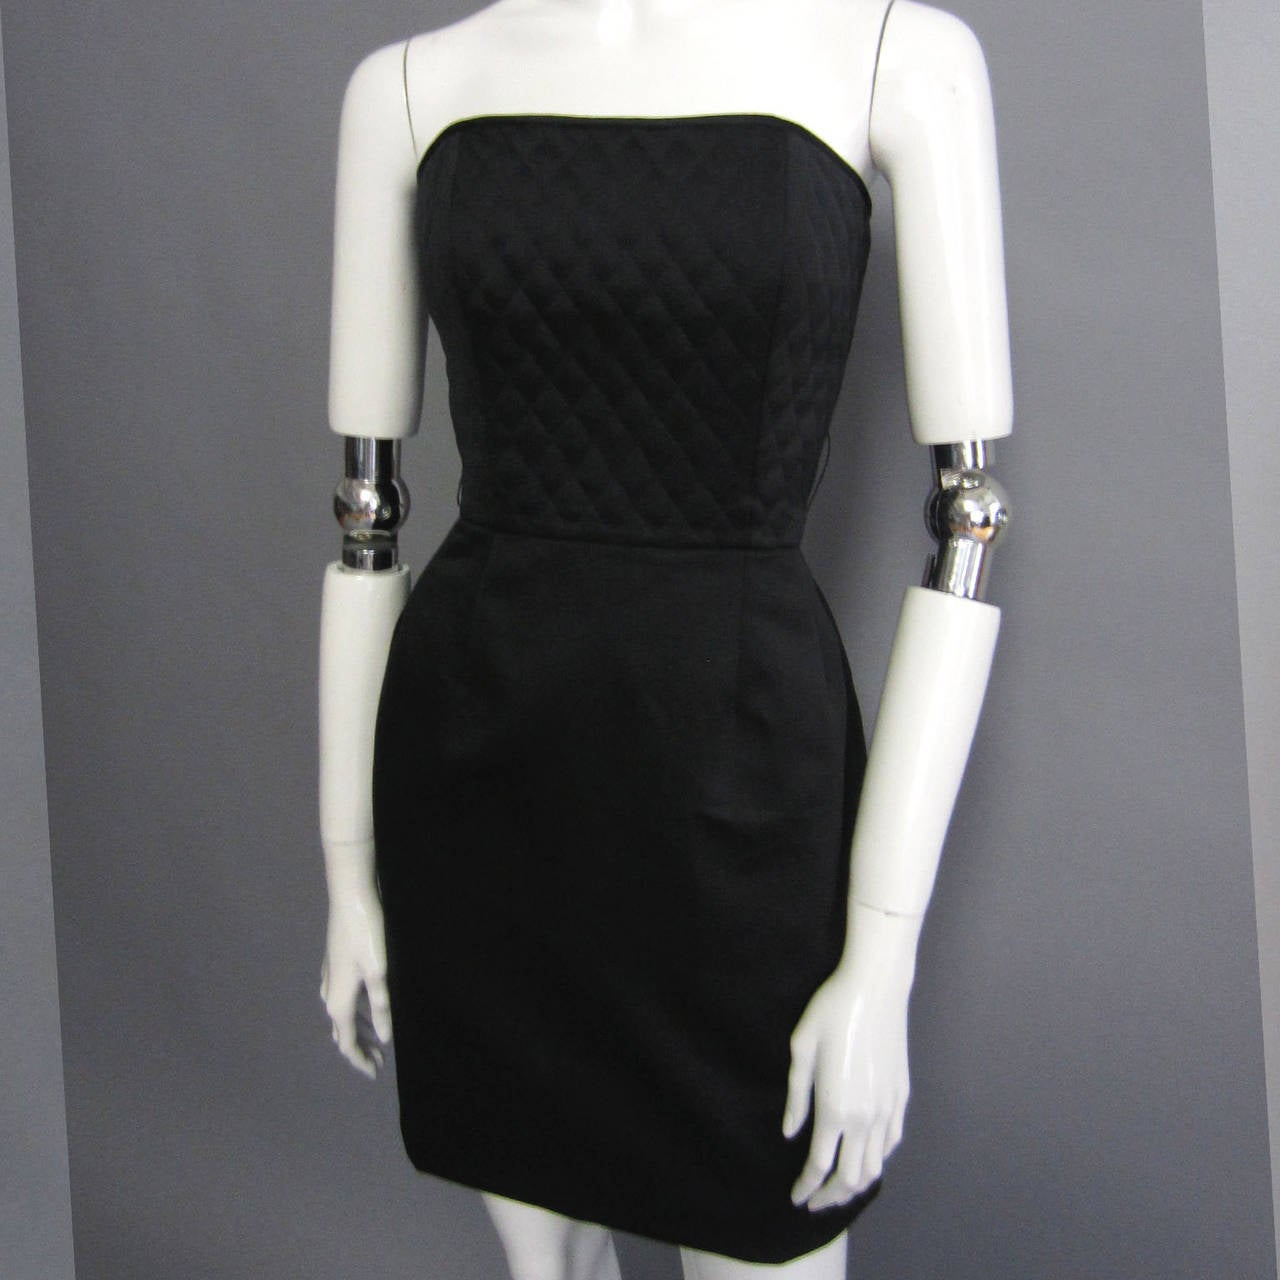 1980s VICTOR COSTA Quilted Little Black Dress 3